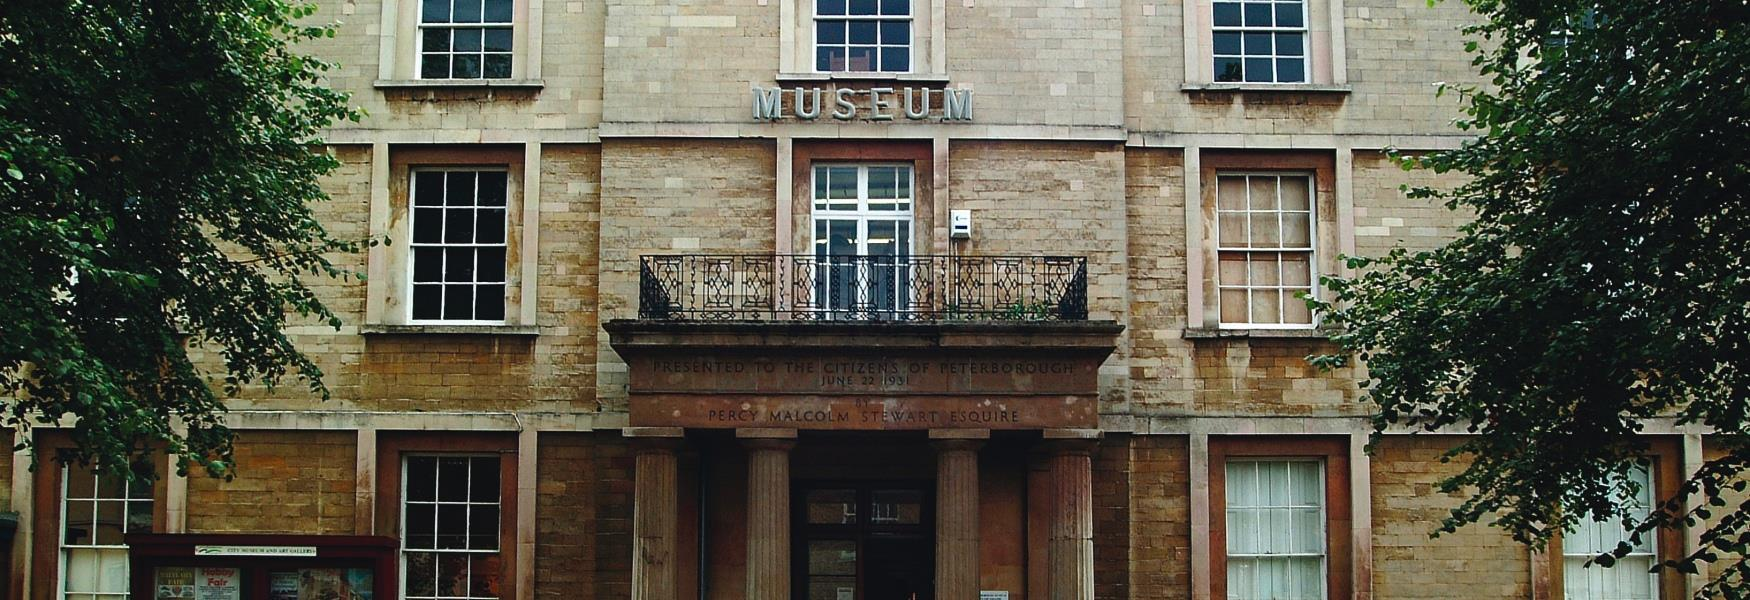 Image of the front entrance of the Peterborough Museum